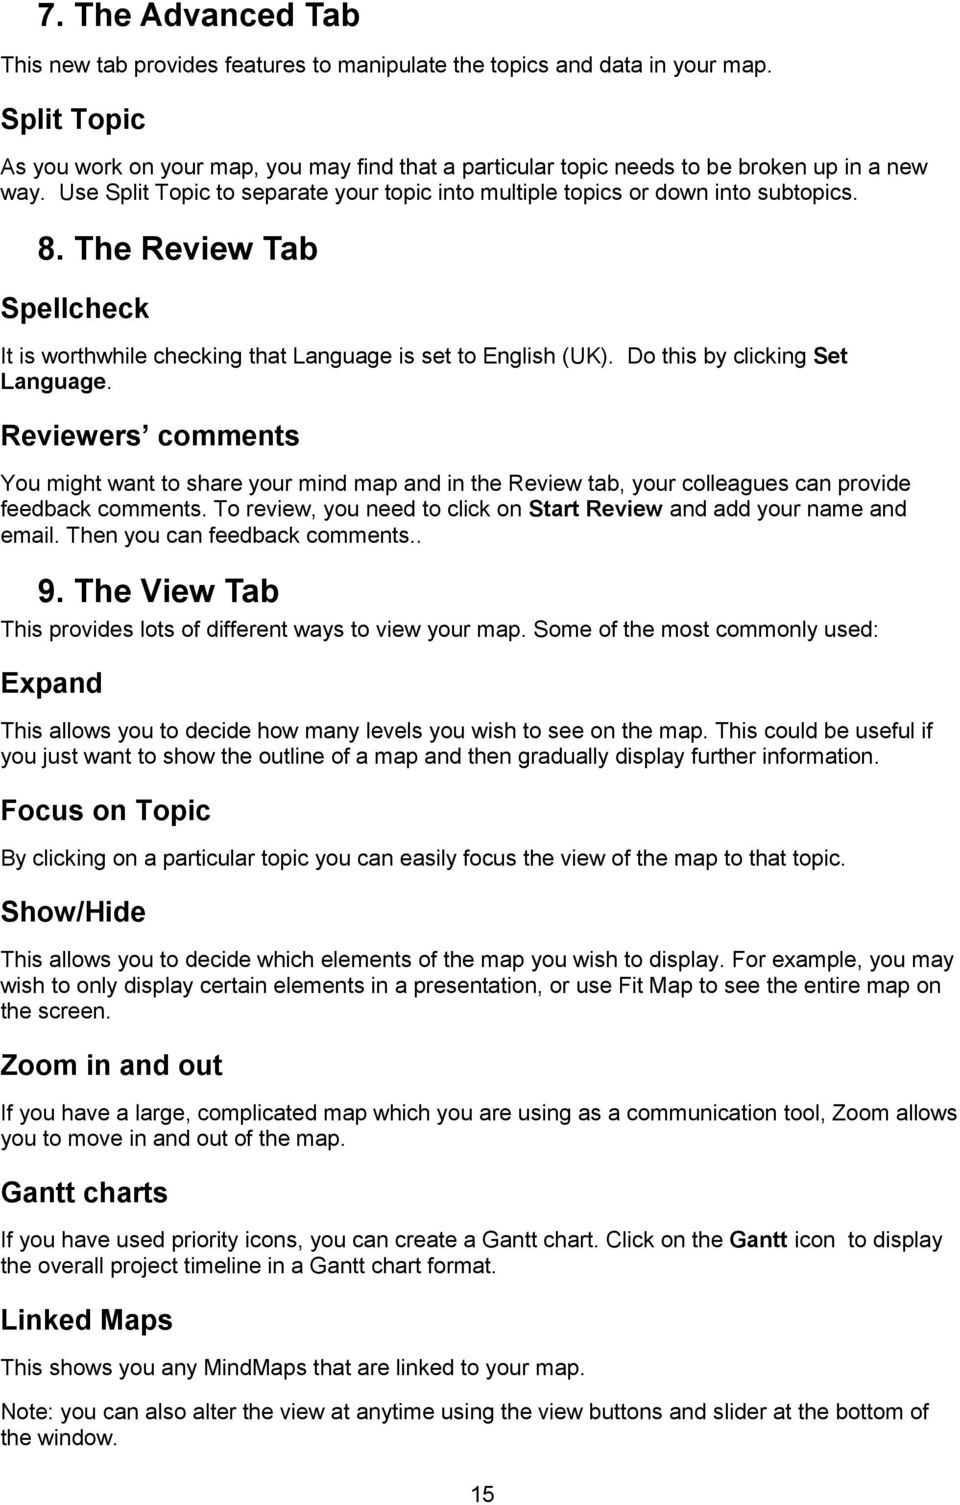 The Review Tab Spellcheck It is worthwhile checking that Language is set to English (UK). Do this by clicking Set Language.